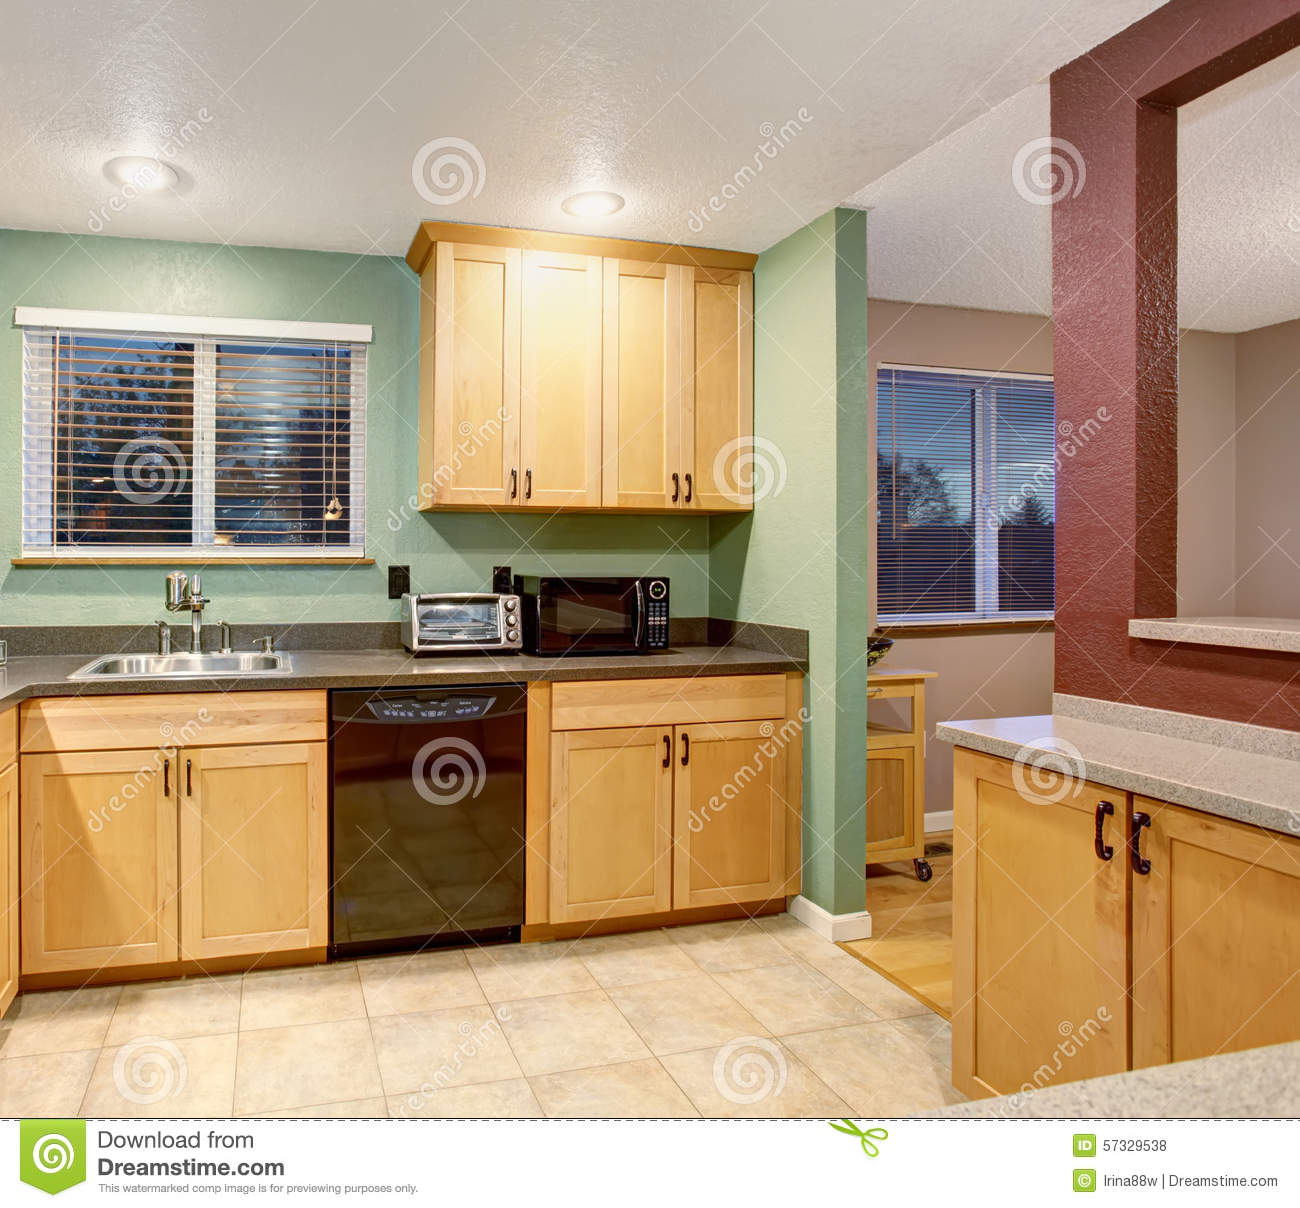 Endearing 80 light wood kitchen interior inspiration for Light colored kitchen cabinets